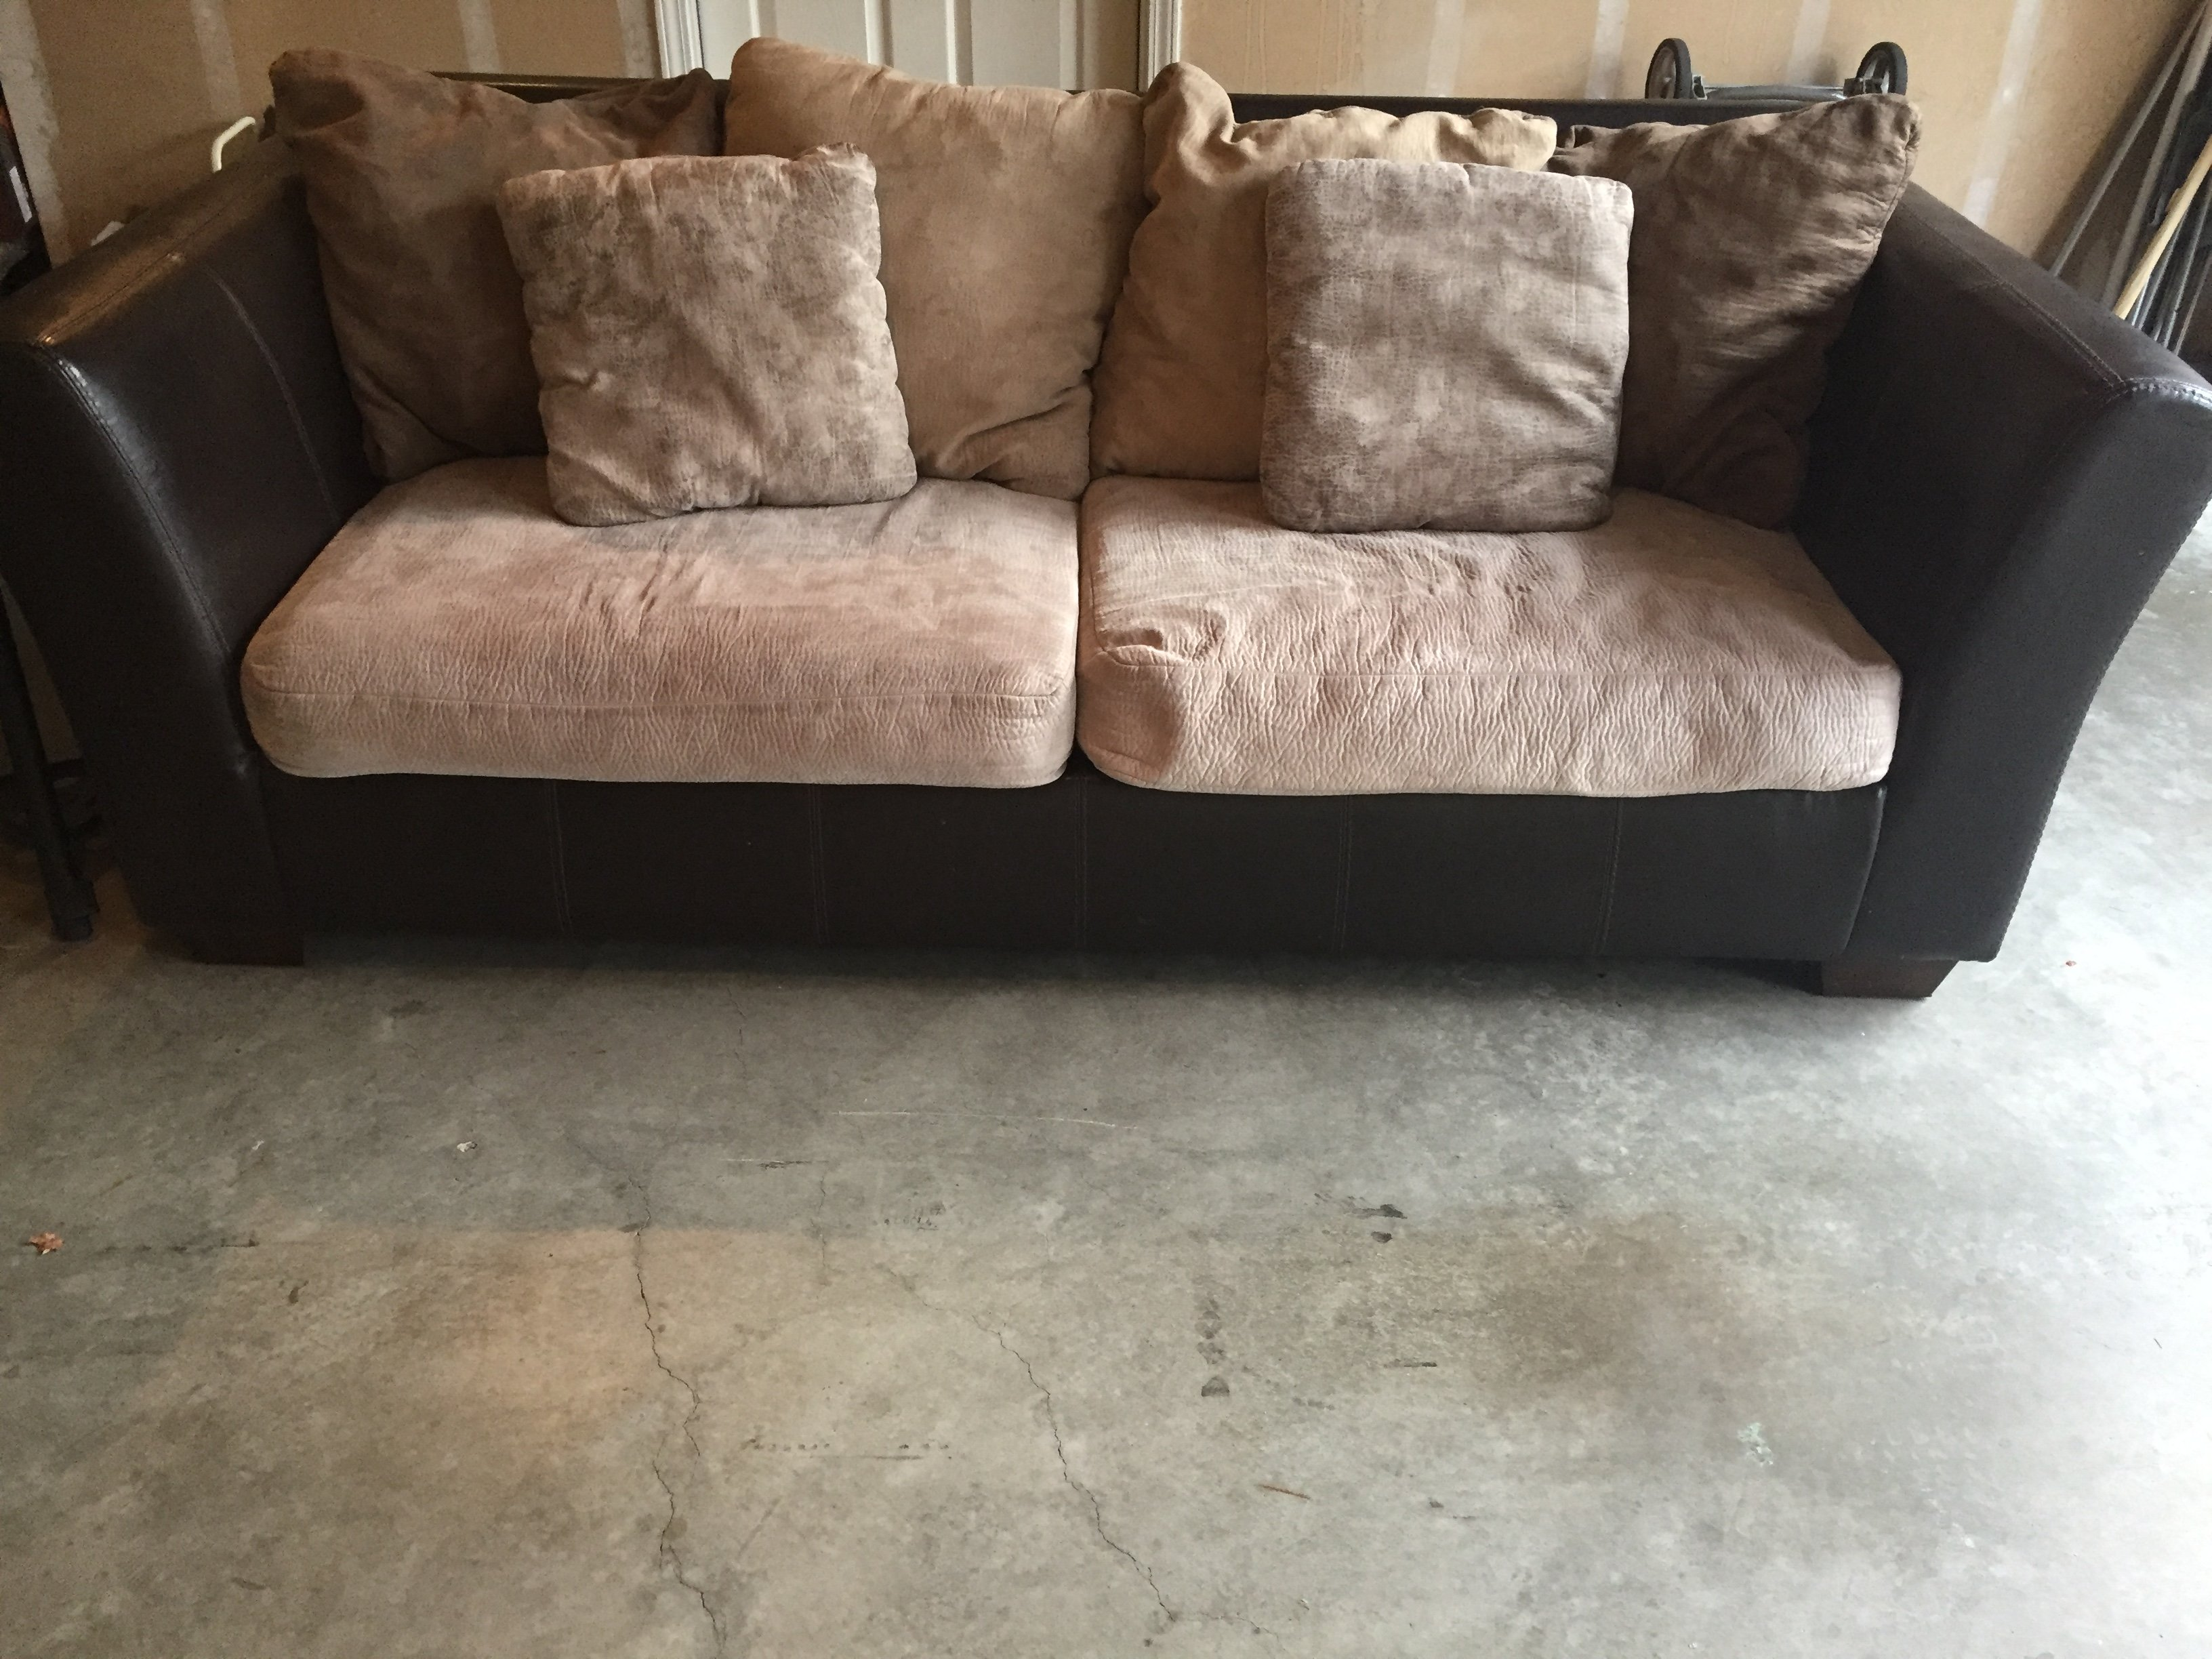 ashley sofa sale l shaped living room on 50 connecting people in san ramon